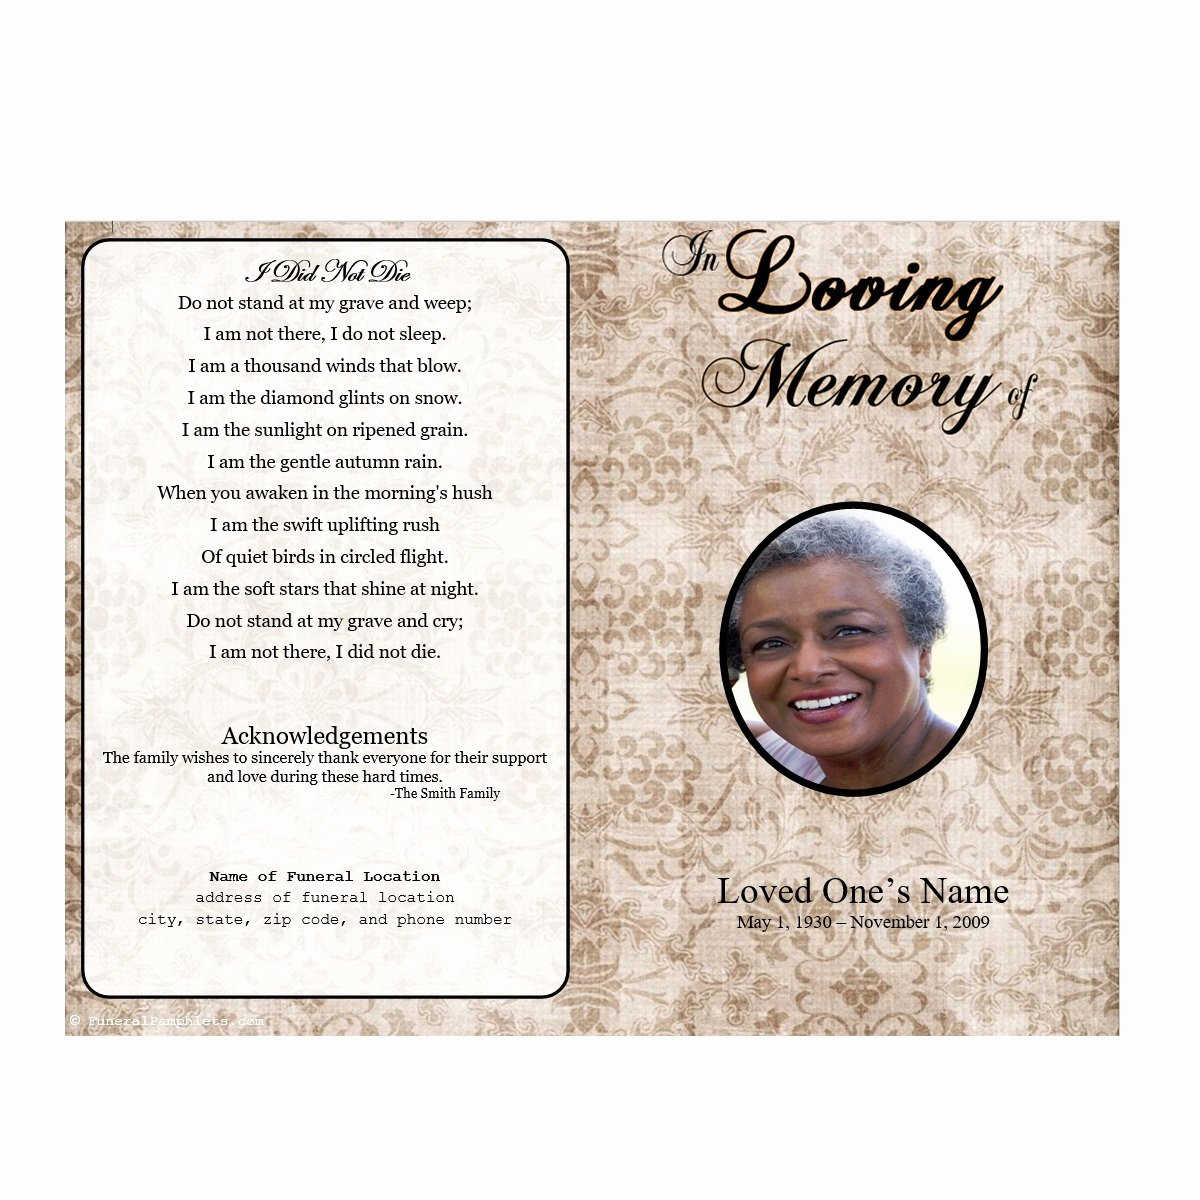 Memorial Pamphlet Template Free Lovely Obituary Program Template Letter Examples Funeral Samples